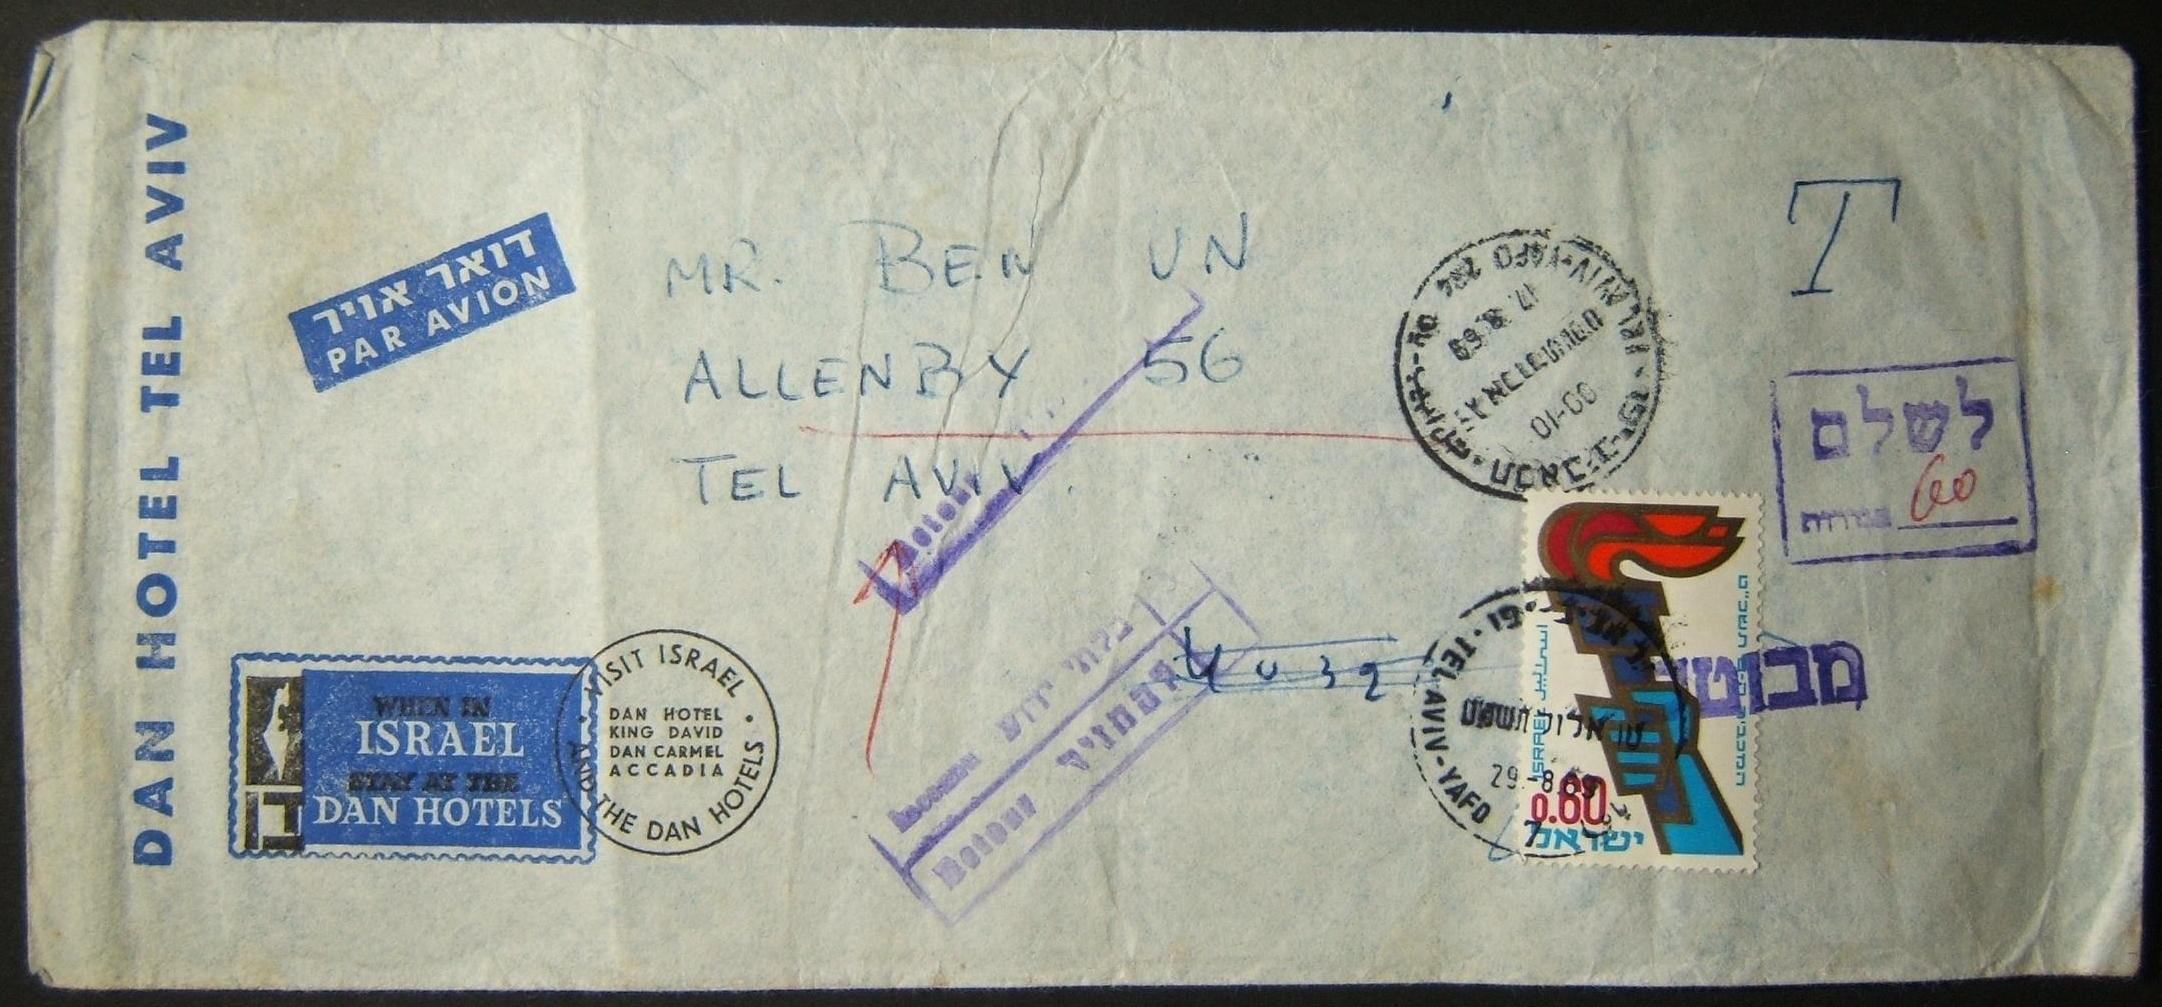 1969 unfranked Tel Aviv mail, address unknown; double attempted delivery - taxed 4x